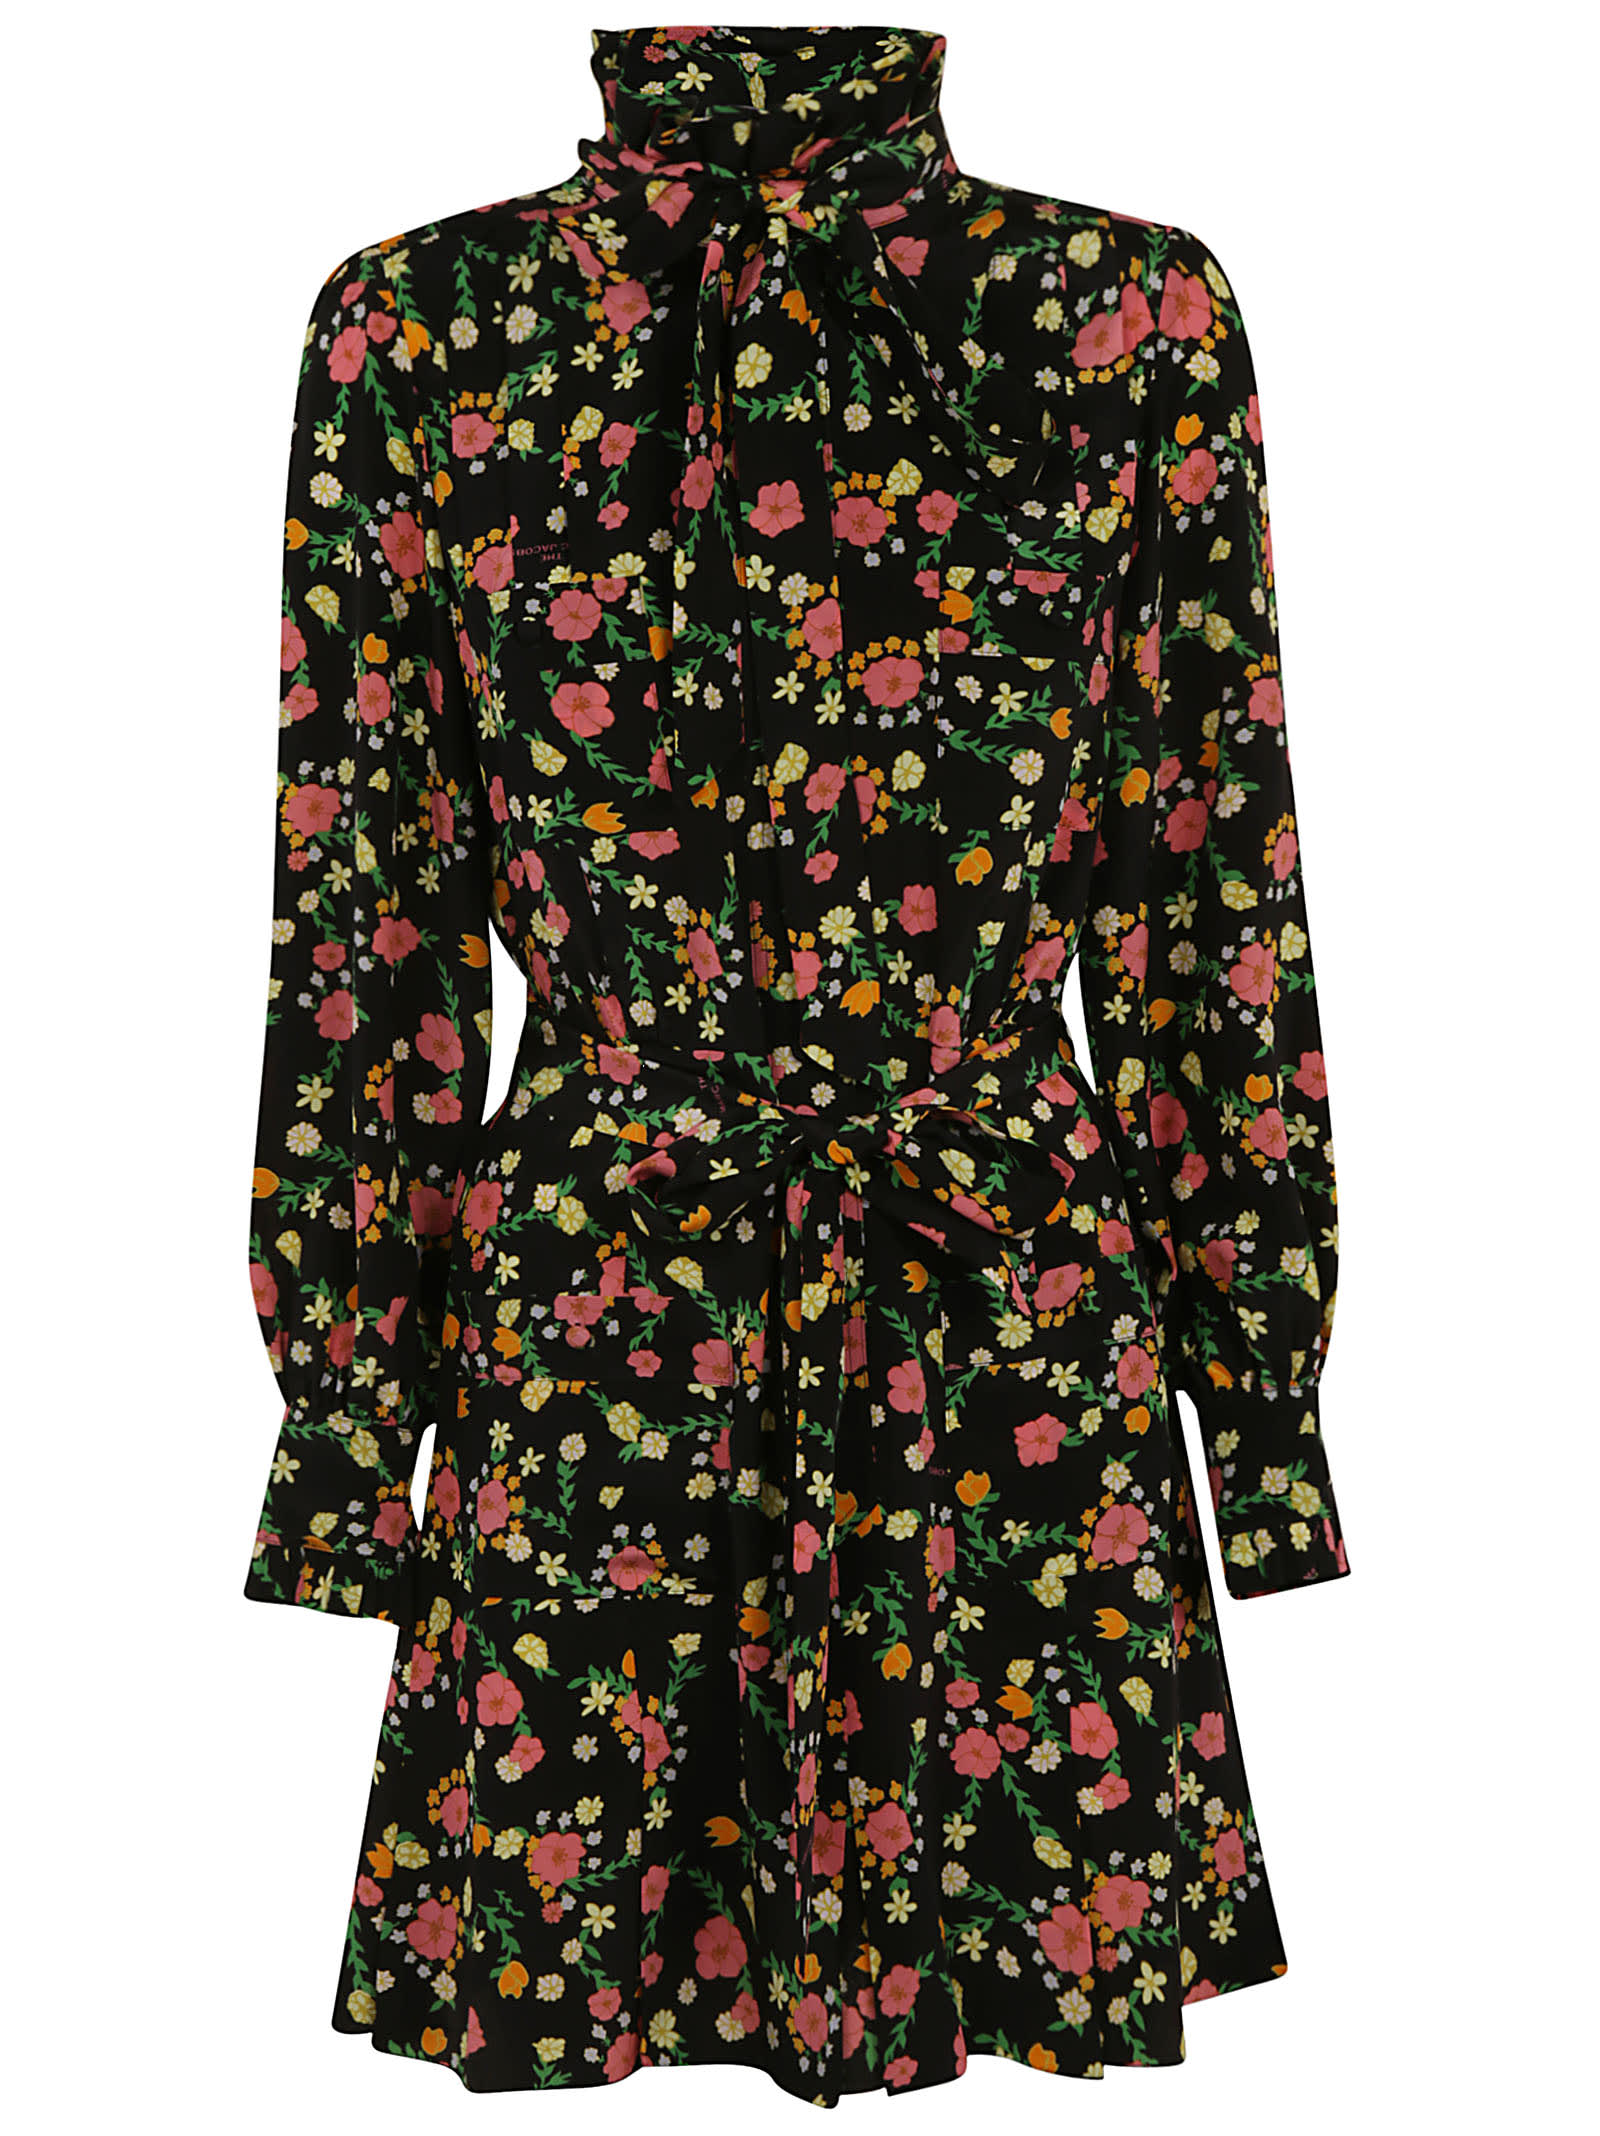 Buy Marc Jacobs Floral Print Bow Detail Dress online, shop Marc Jacobs with free shipping